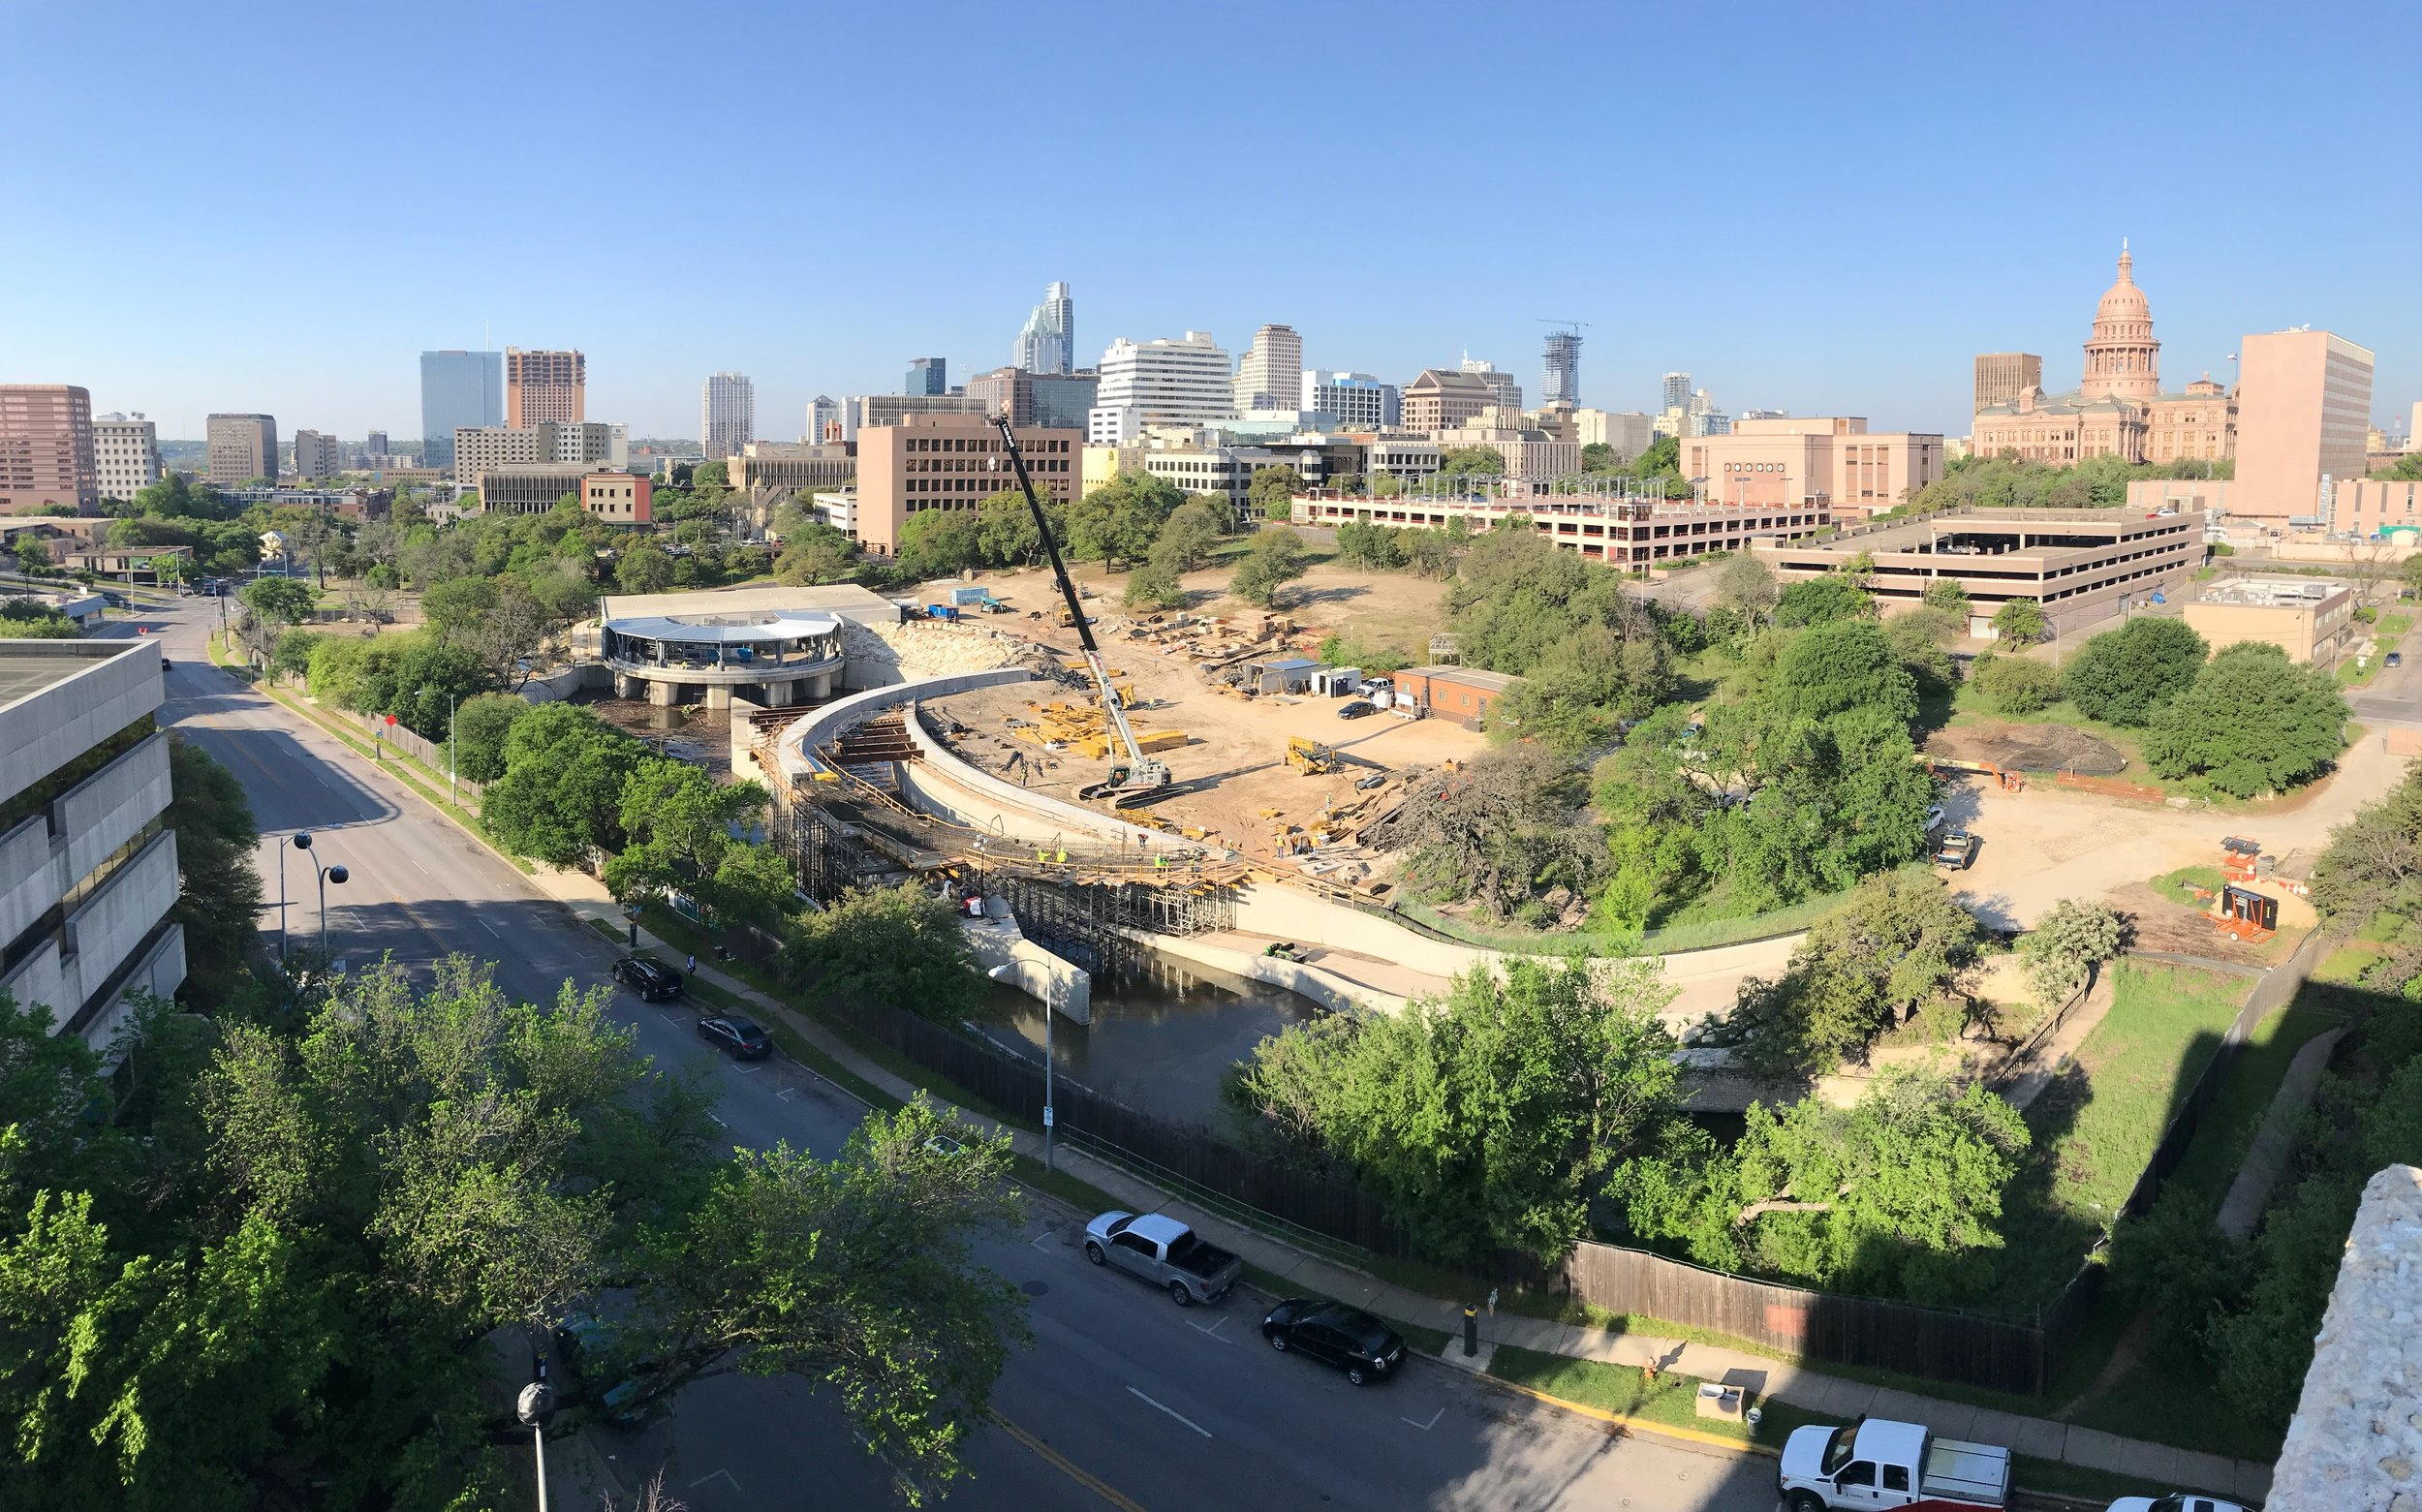 photo credit: Peter Mullan  If you're interested in a birds-eye view of Waterloo Park as it emerges, including breathtaking vistas of downtown and the Texas State Capitol, I'll let you in on a secret. Head to the seventh floor of the parking garage at the corner of 15th and Red River Streets (the old Brackenridge parking garage that continues to serve as the parking garage for the new Dell Seton Medical Center).